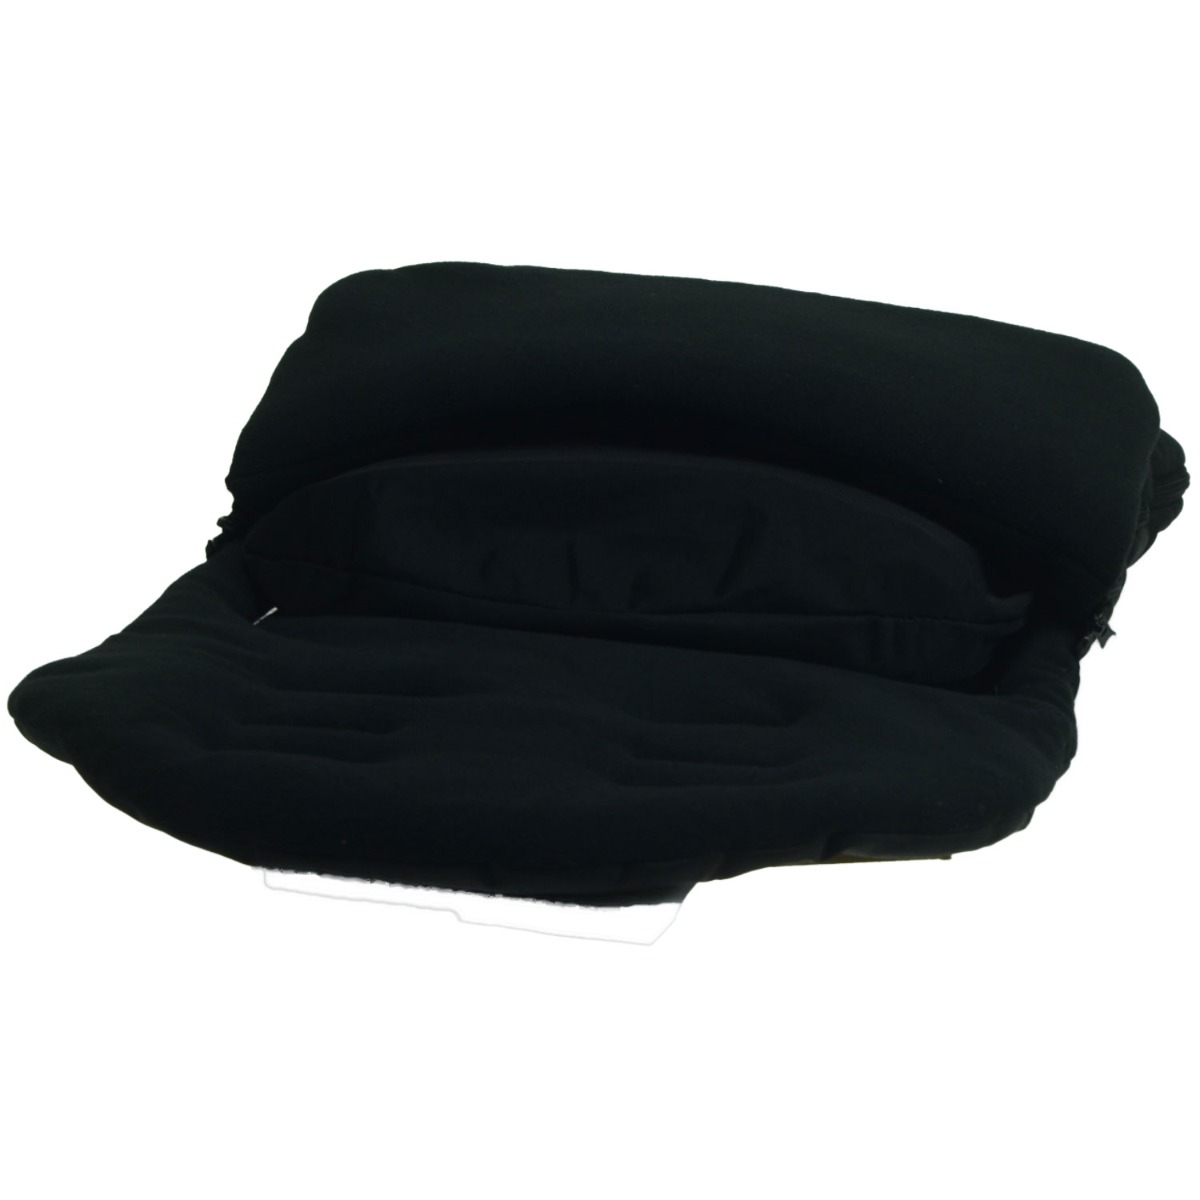 Universal-Pushchair-Footmuff-Cosytoes-Fleece-Lined-Fit-For-Stroller-Prams-Buggy thumbnail 5